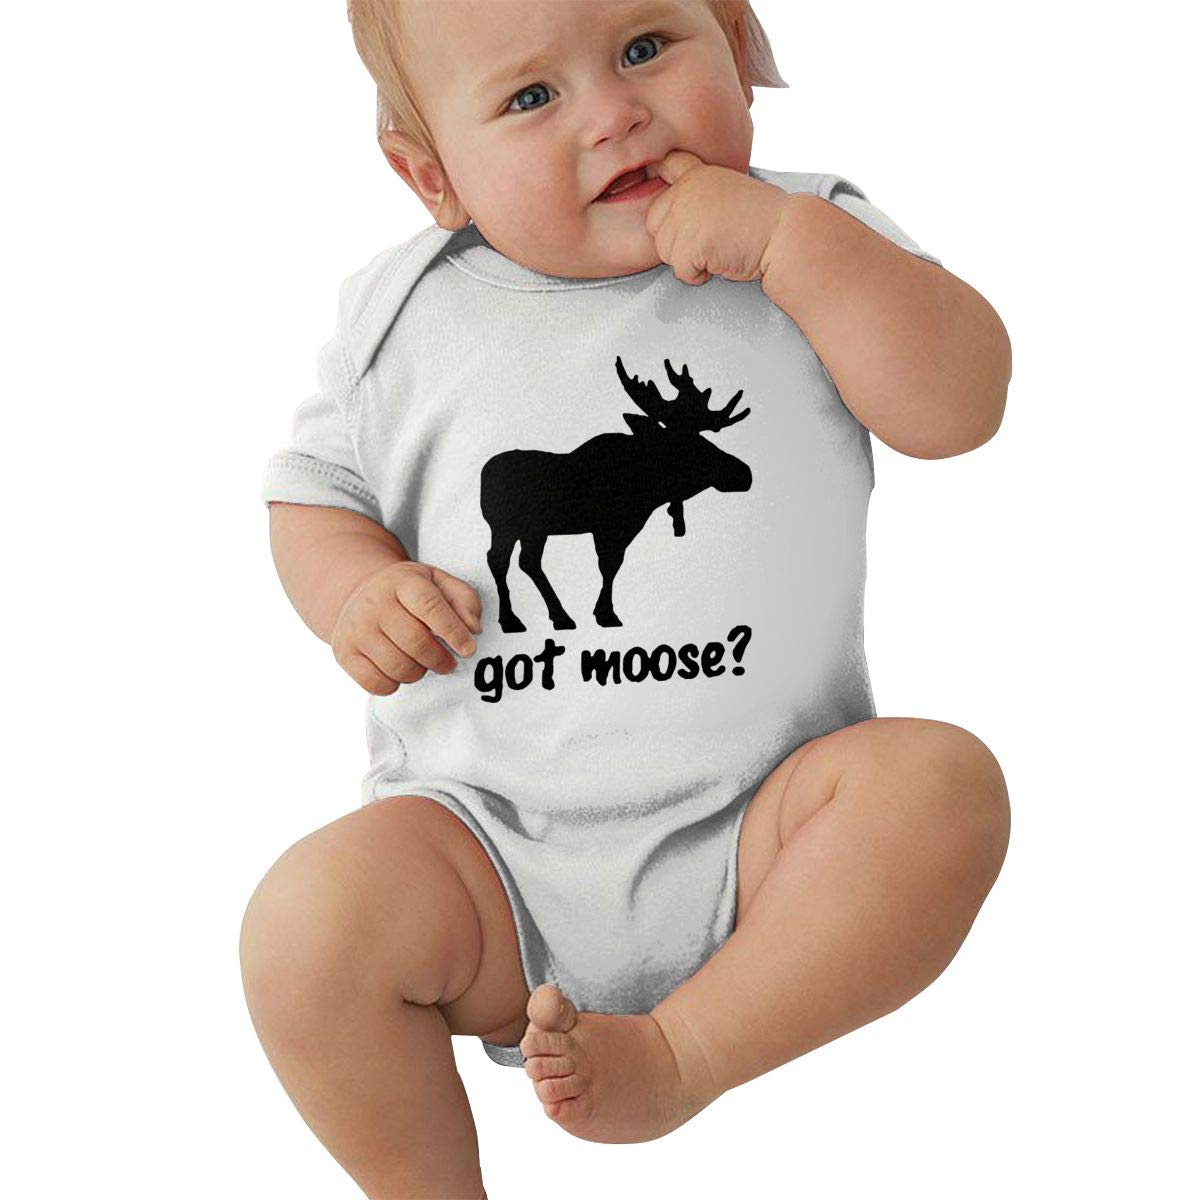 U88oi-8 Short Sleeve Cotton Rompers for Baby Girls Boys Soft Got Moose Crawler